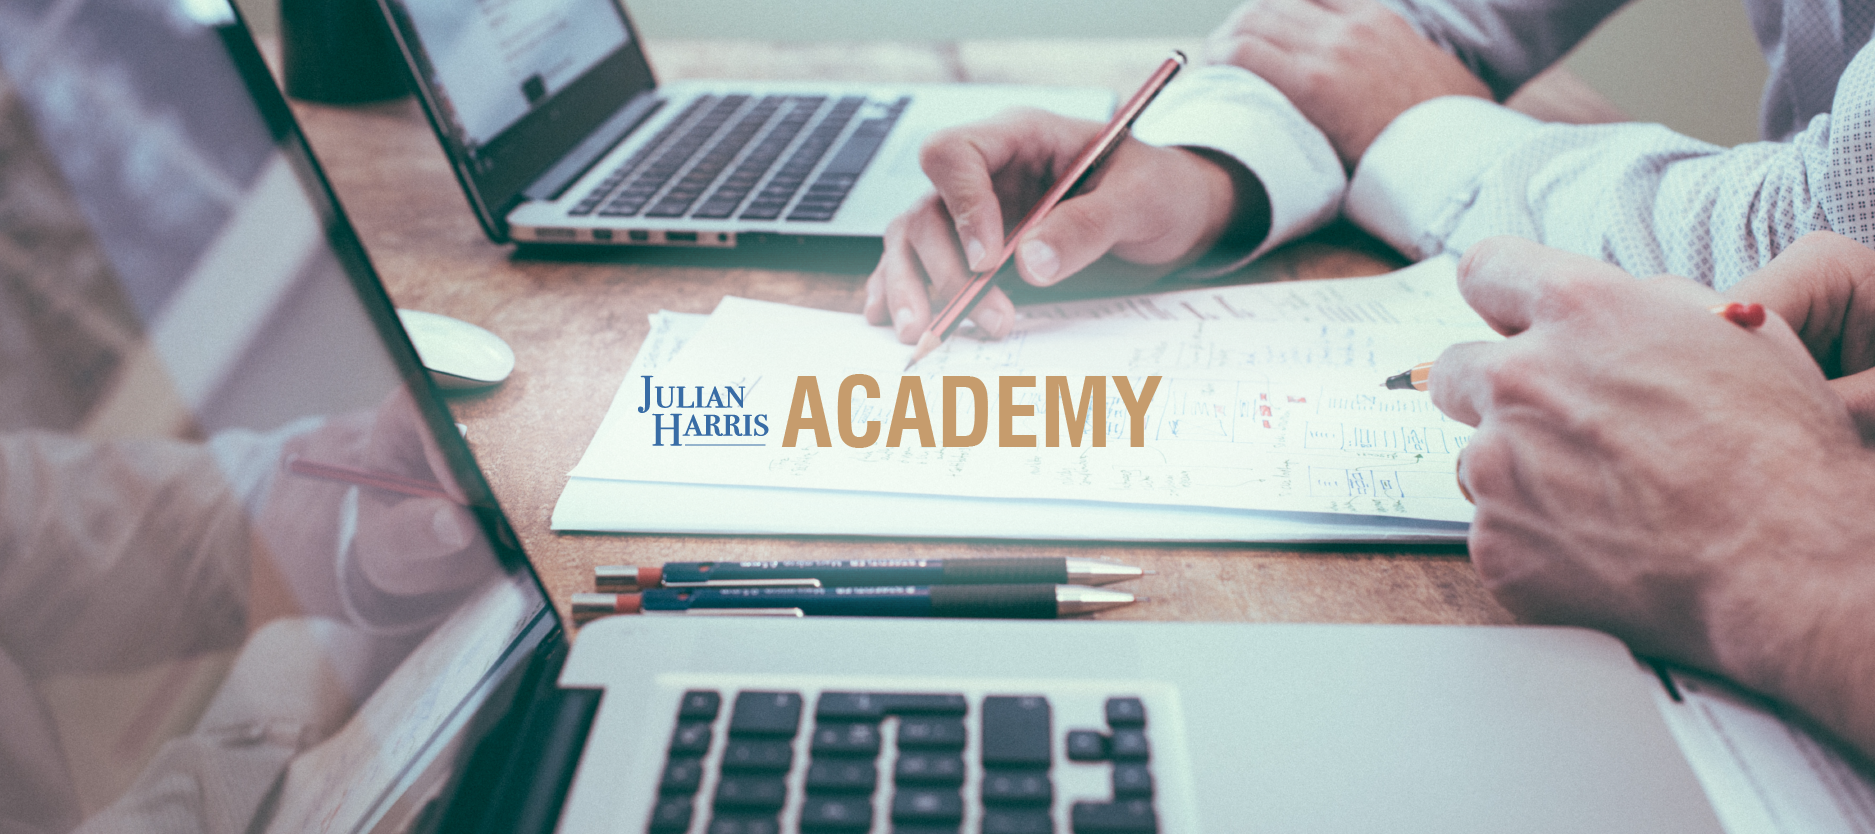 Julian Harris Academy